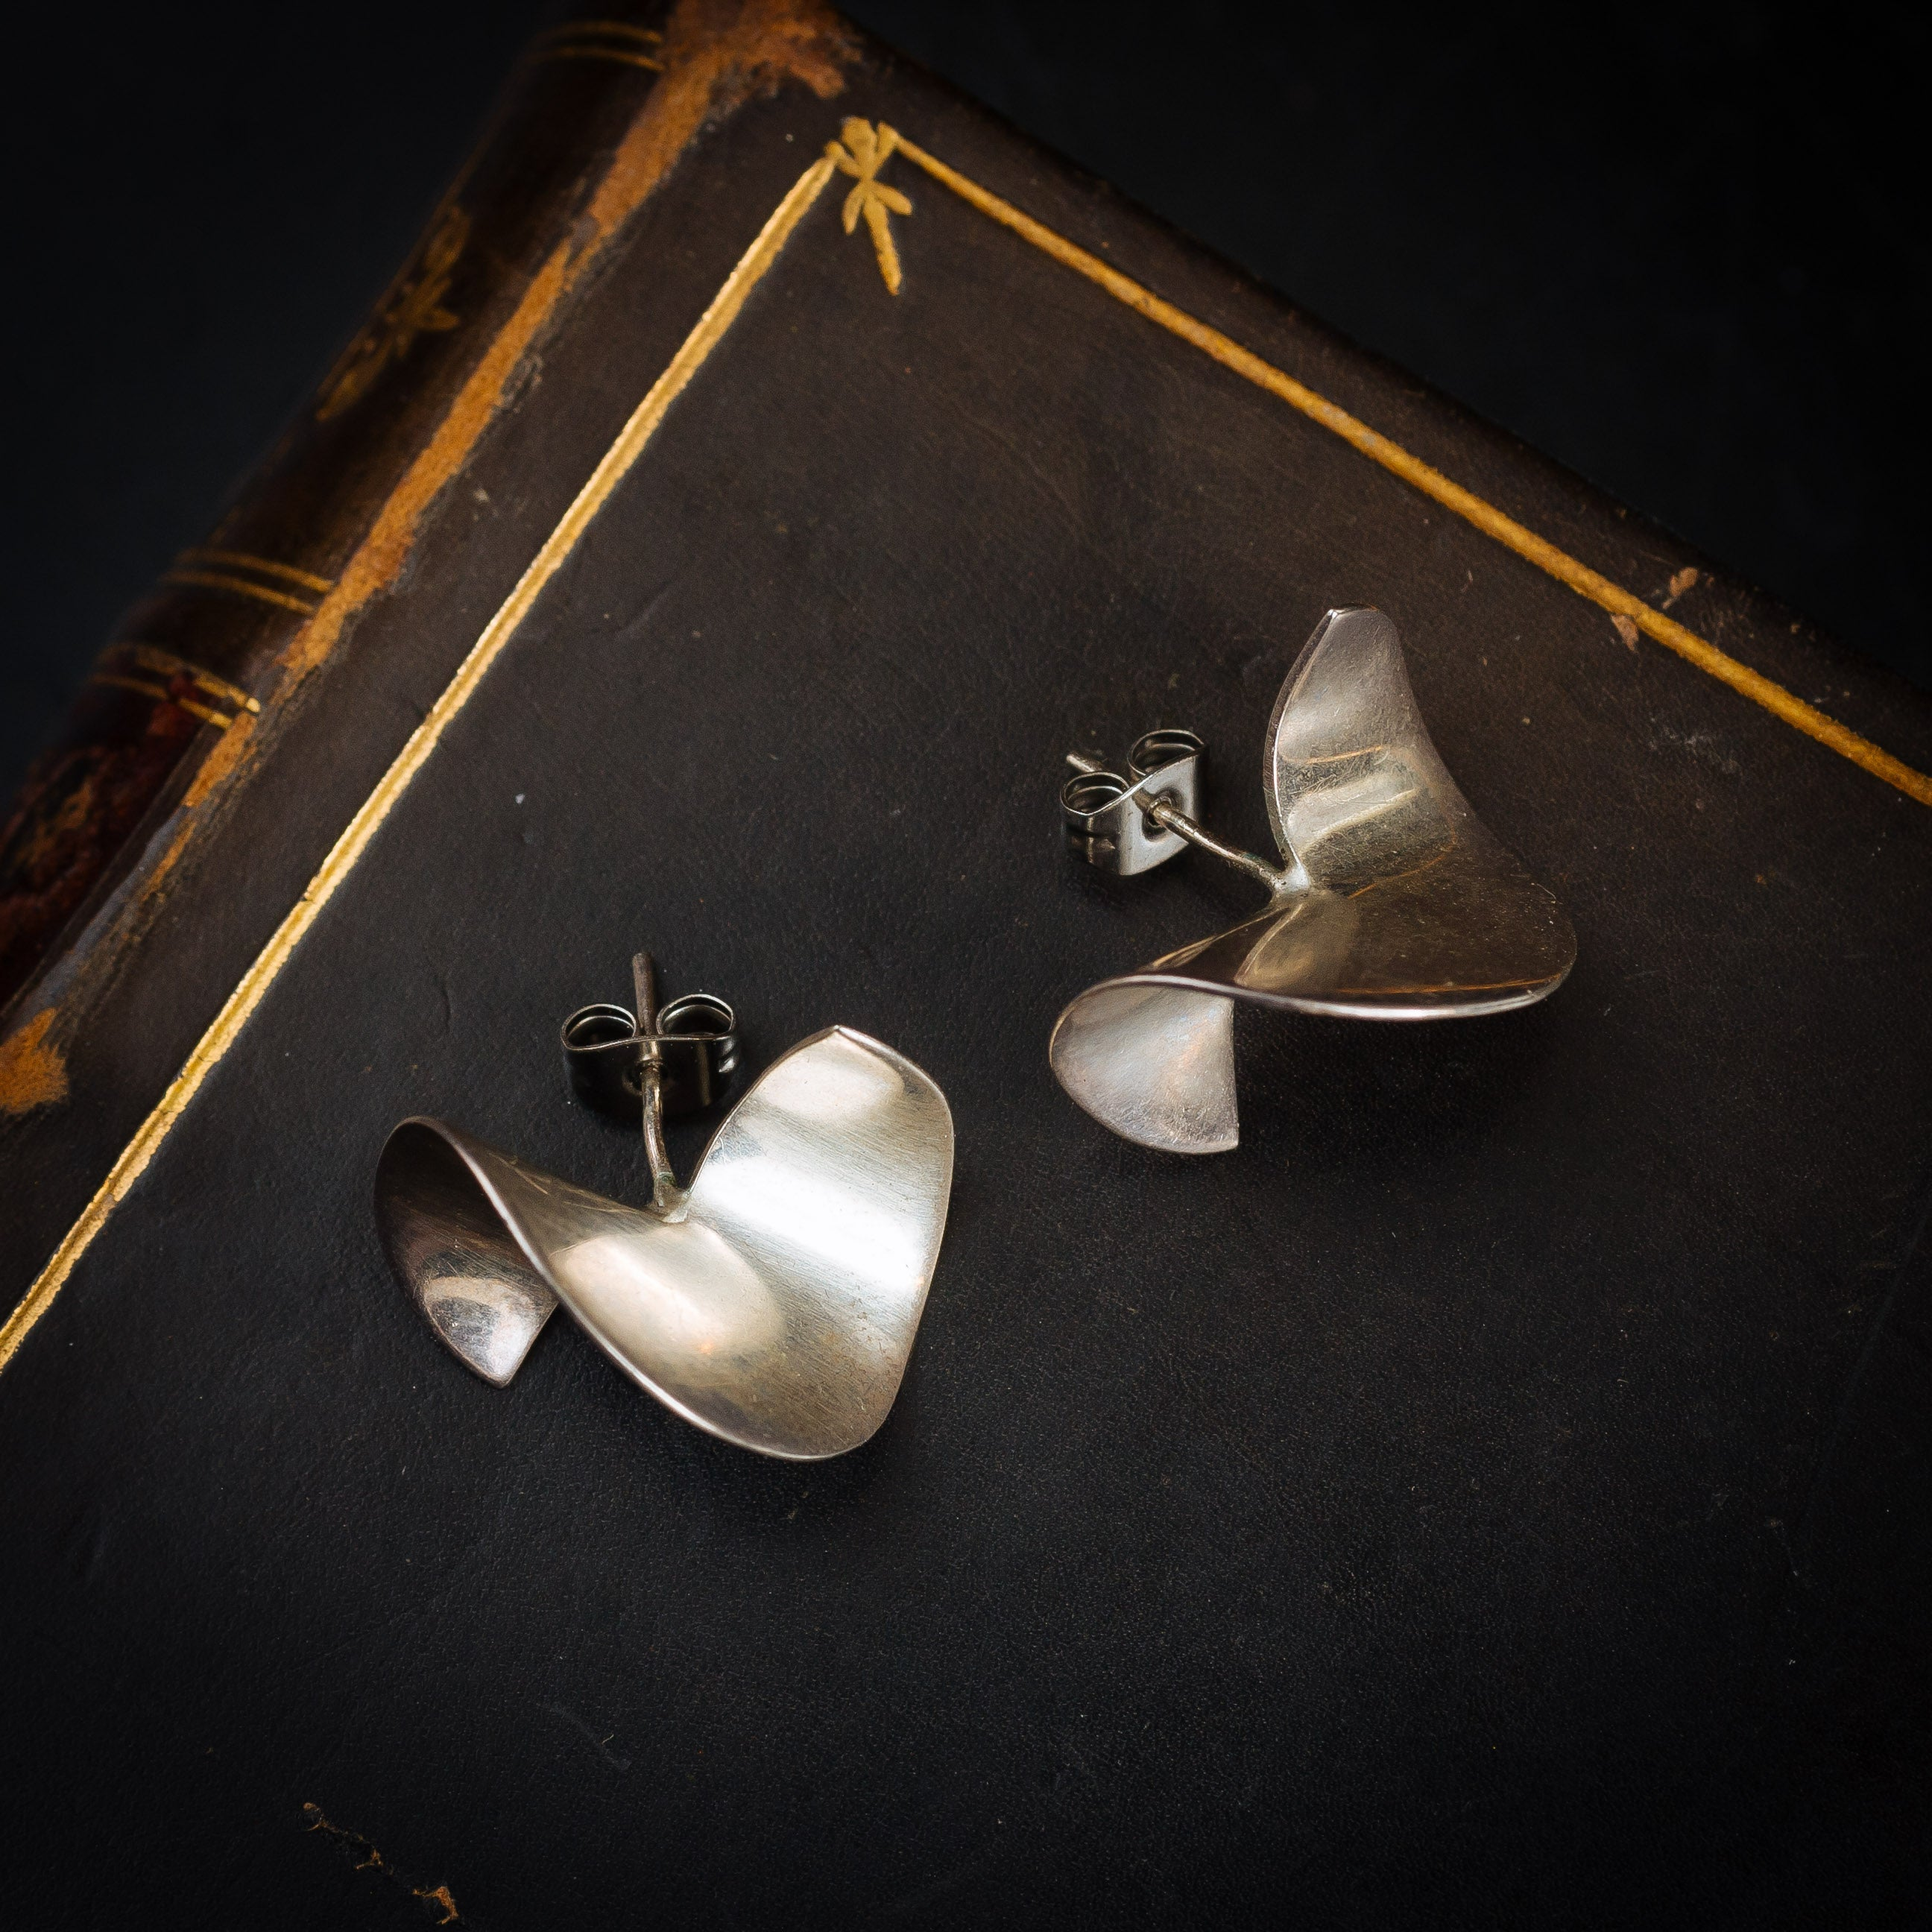 georg on no clip by design sterling jewelry l silver j ditzel nanna id jensen modernist back earrings beautiful